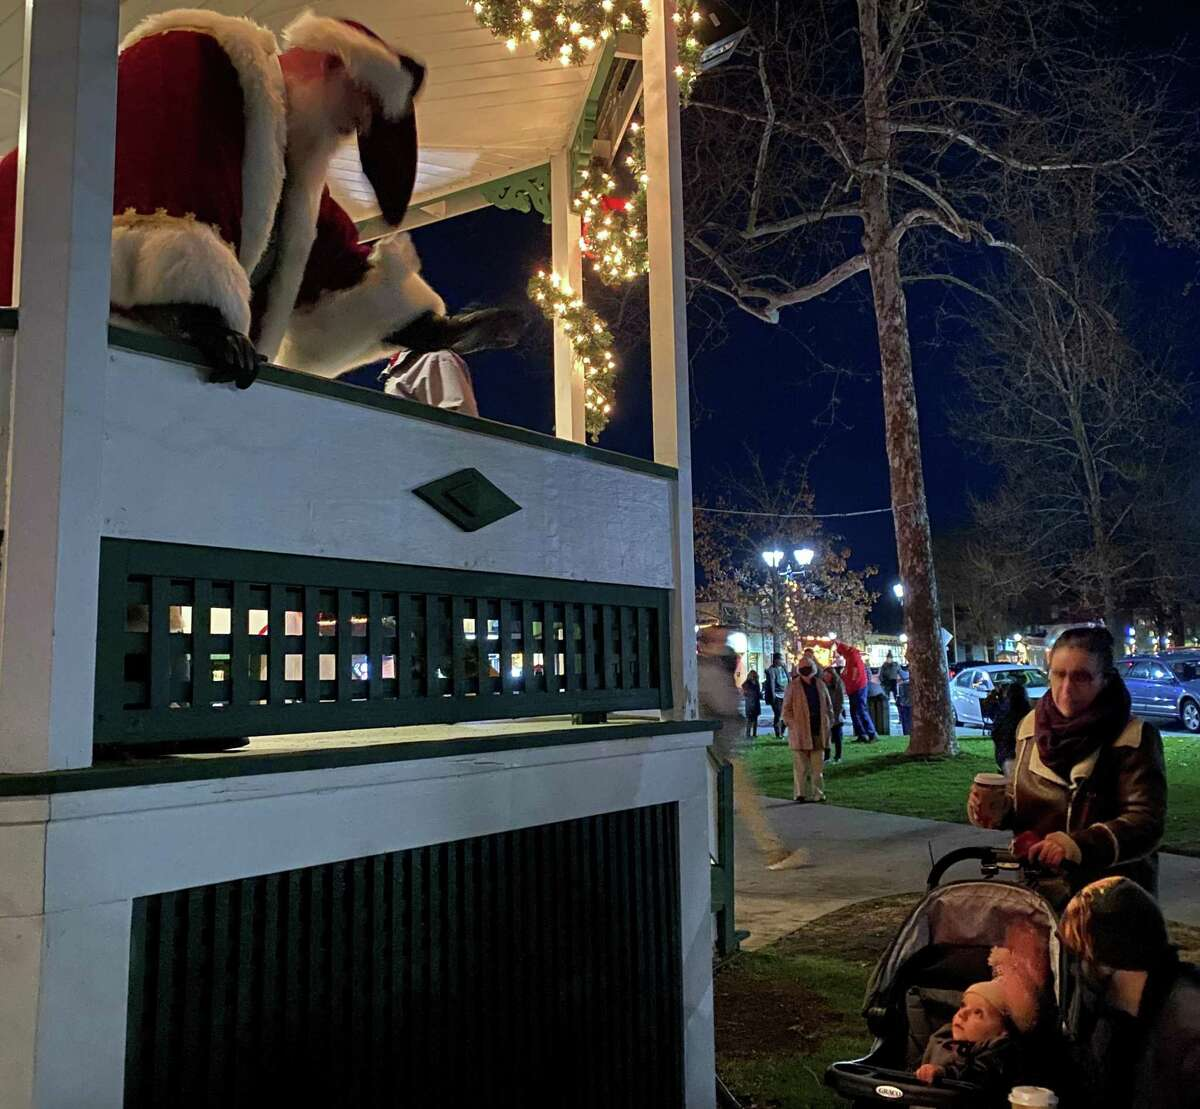 Santa Claus offers a wave to Alex Inch, 1, and his parents as they pass by the bandstand at the conclusion of the ceremony.